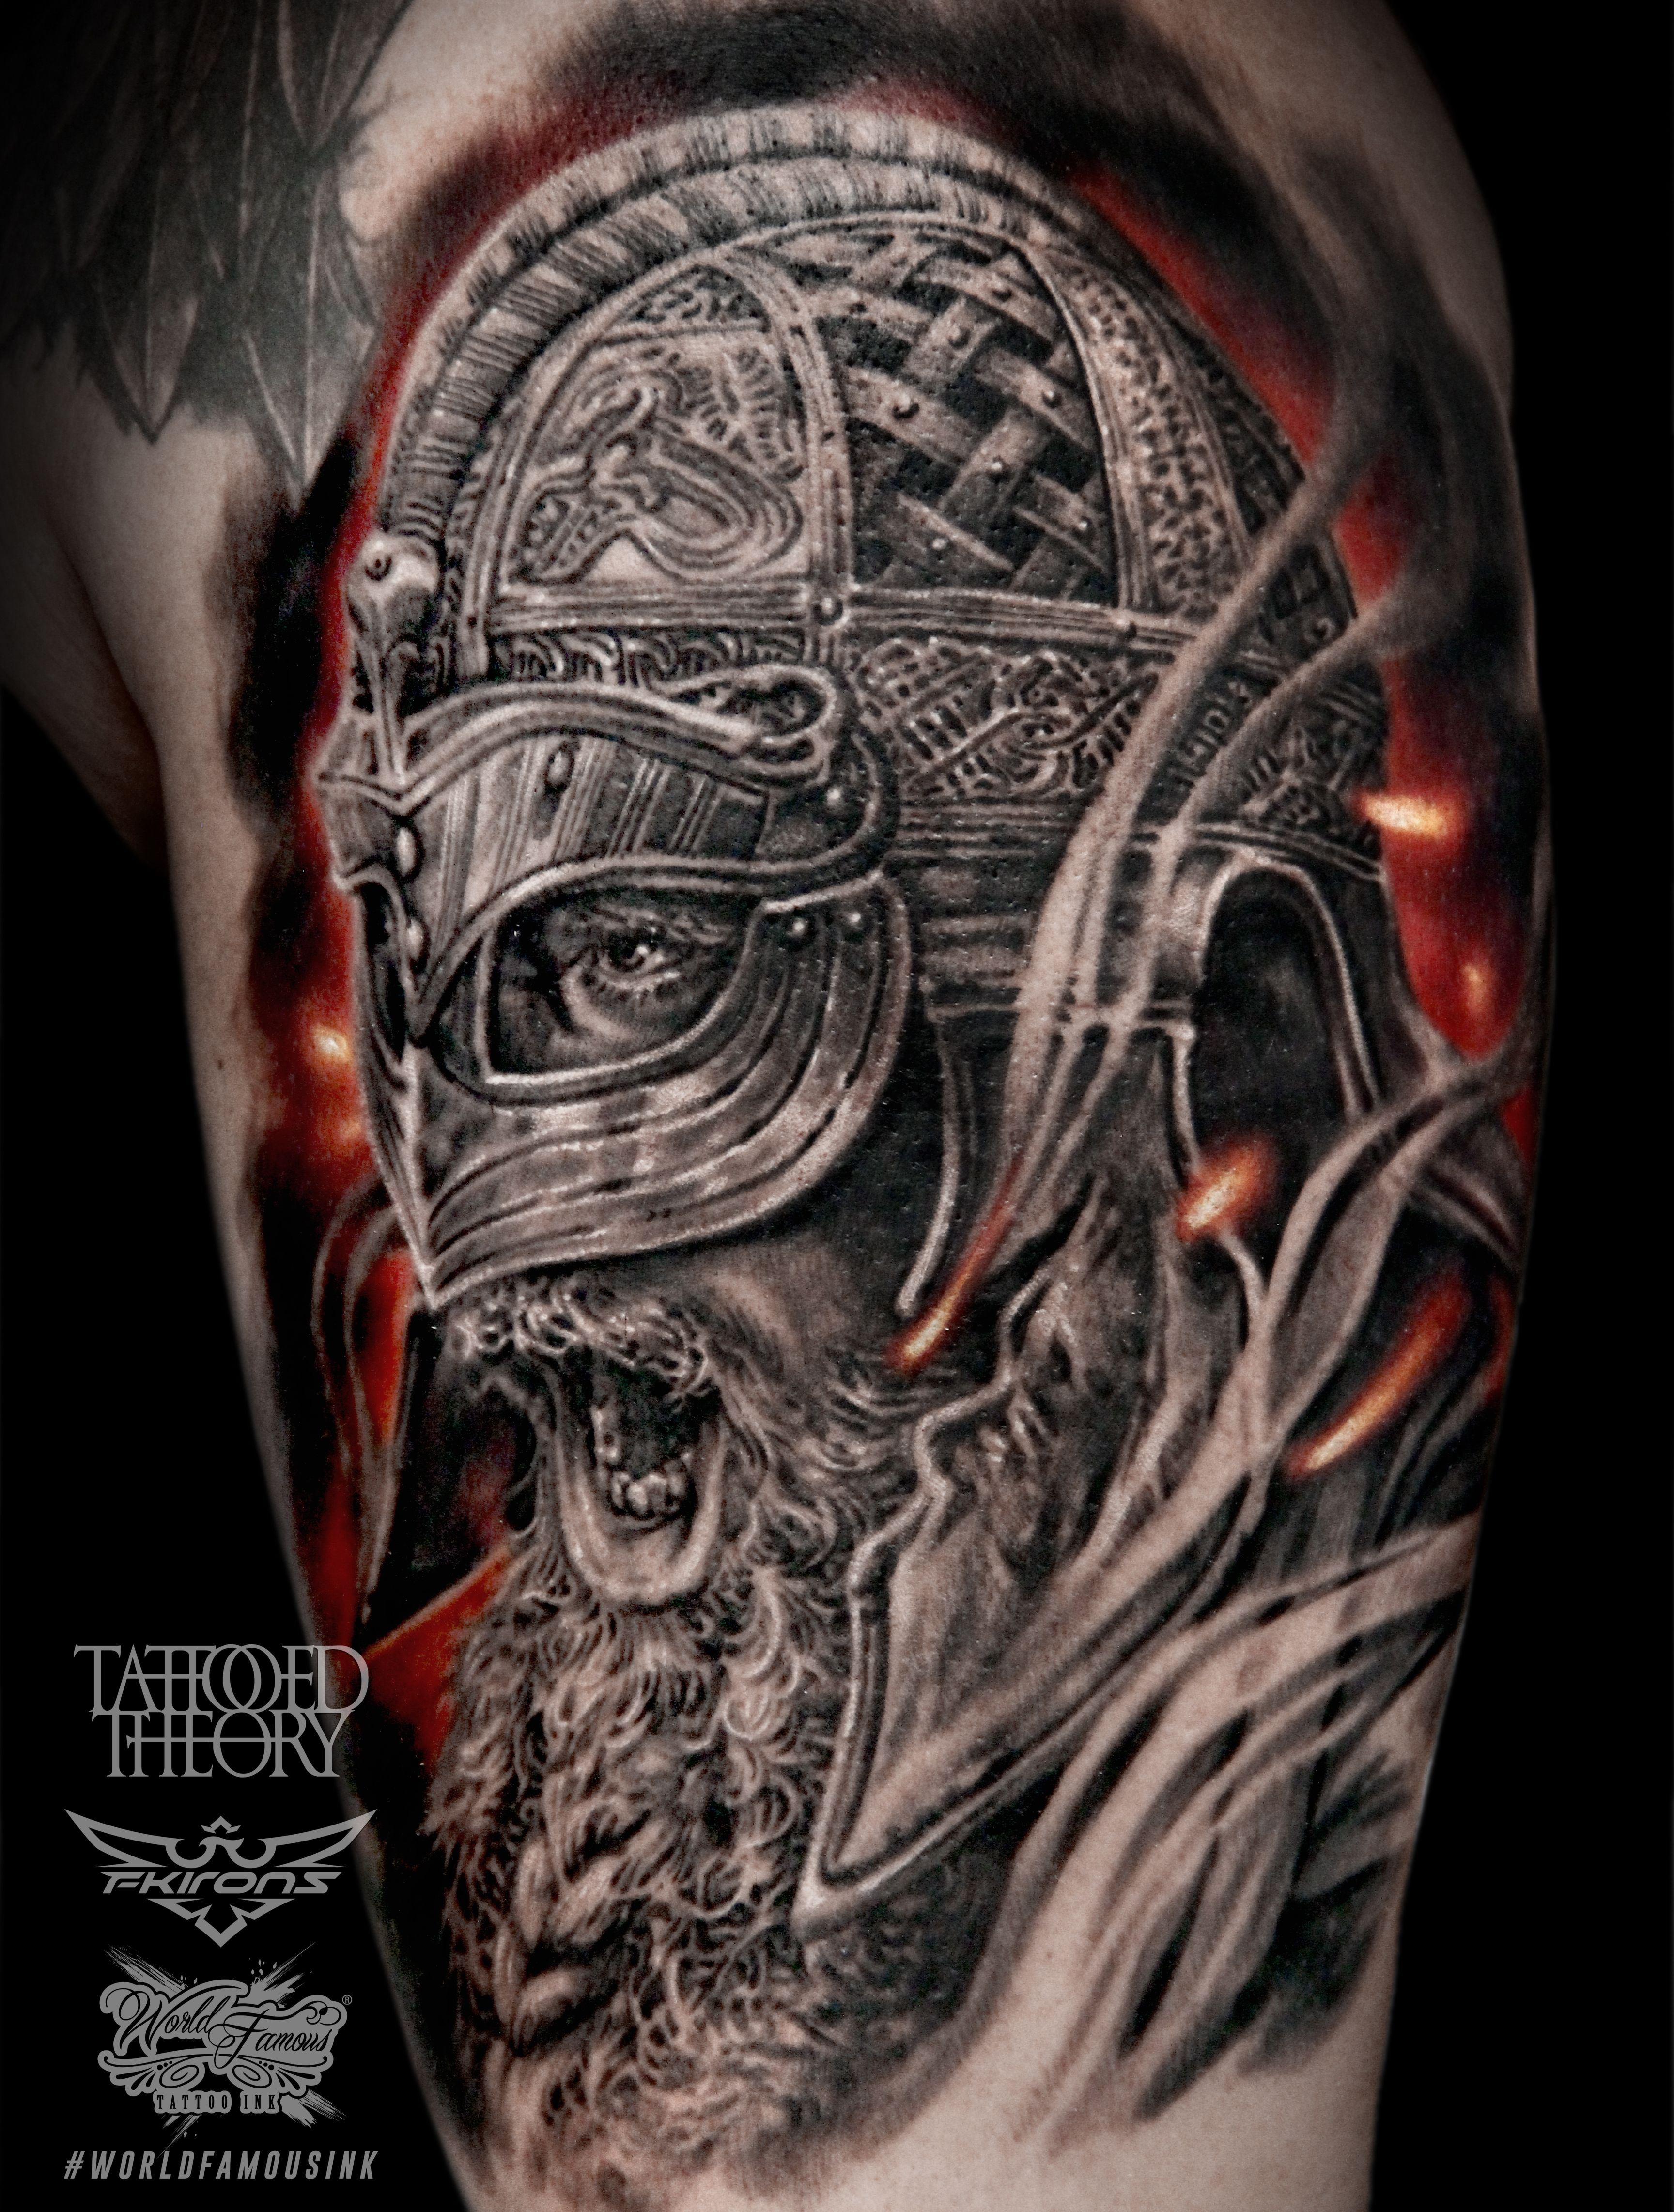 Viking Tattoo Done In 10 Hours By Javier Antunez Owner Artist At